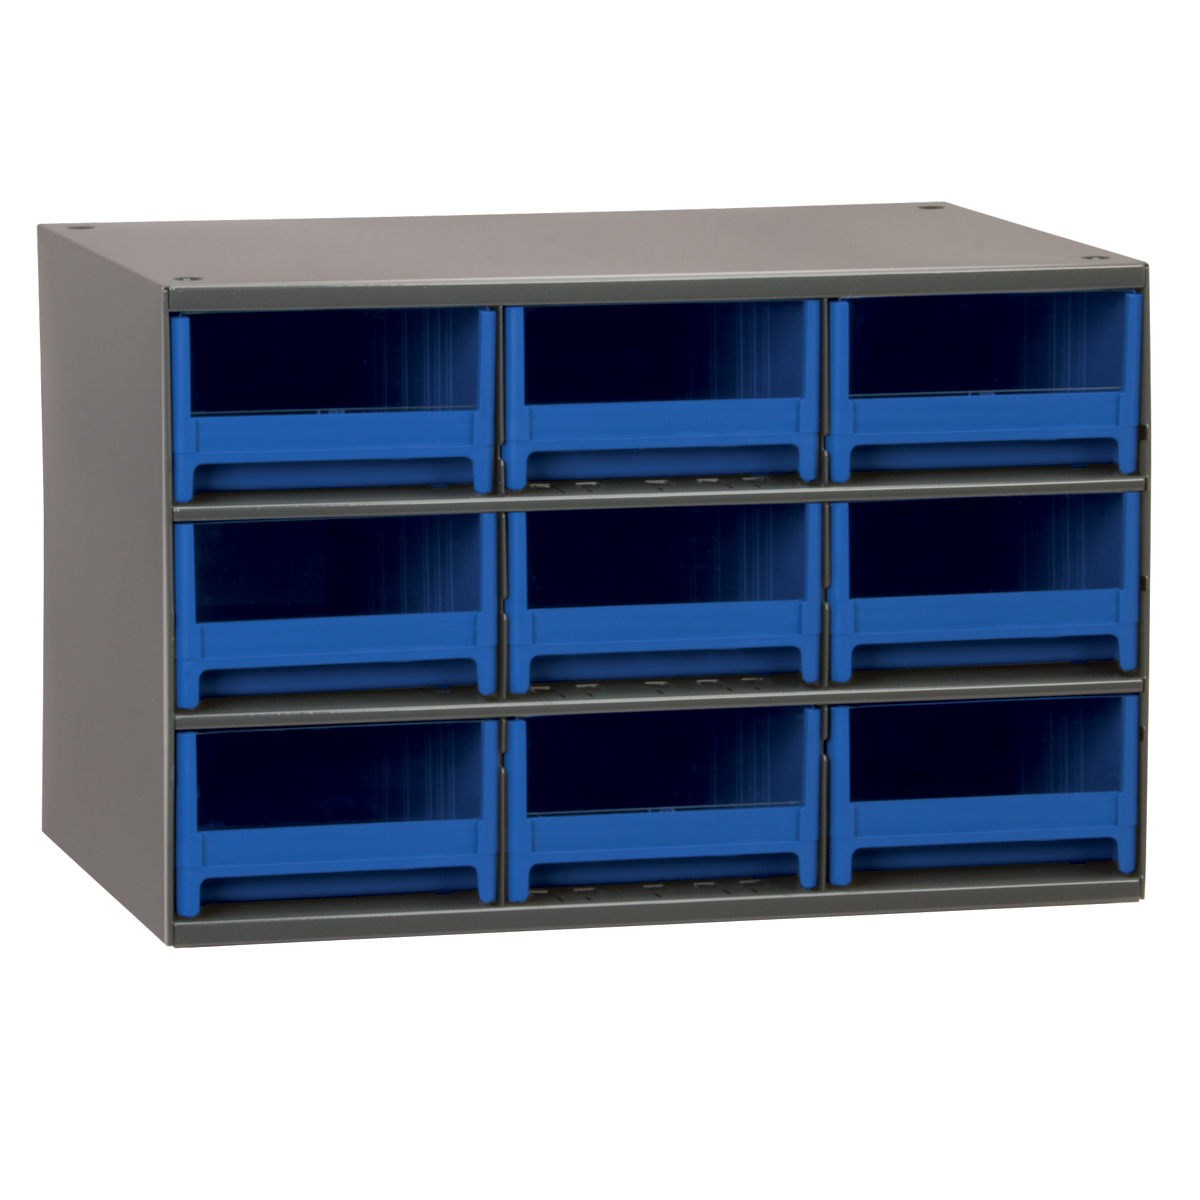 19-Series Steel Cabinet w/ 9 Drawers, Blue (19909BLU).  This item sold in carton quantities of 1.